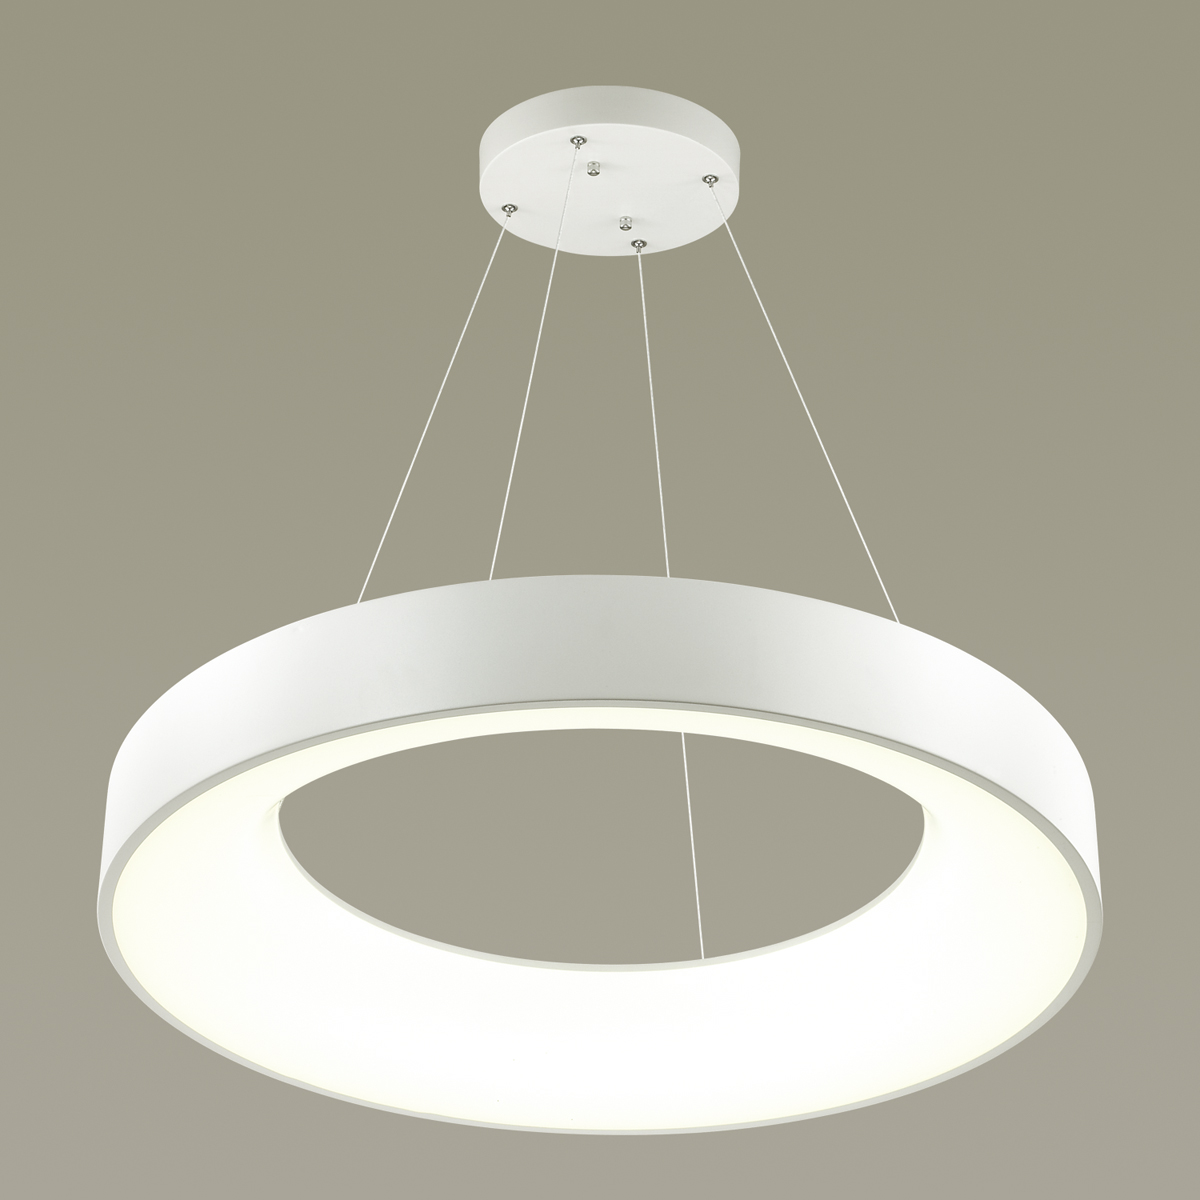 Подвес ODEON LIGHT арт. 4062/80L